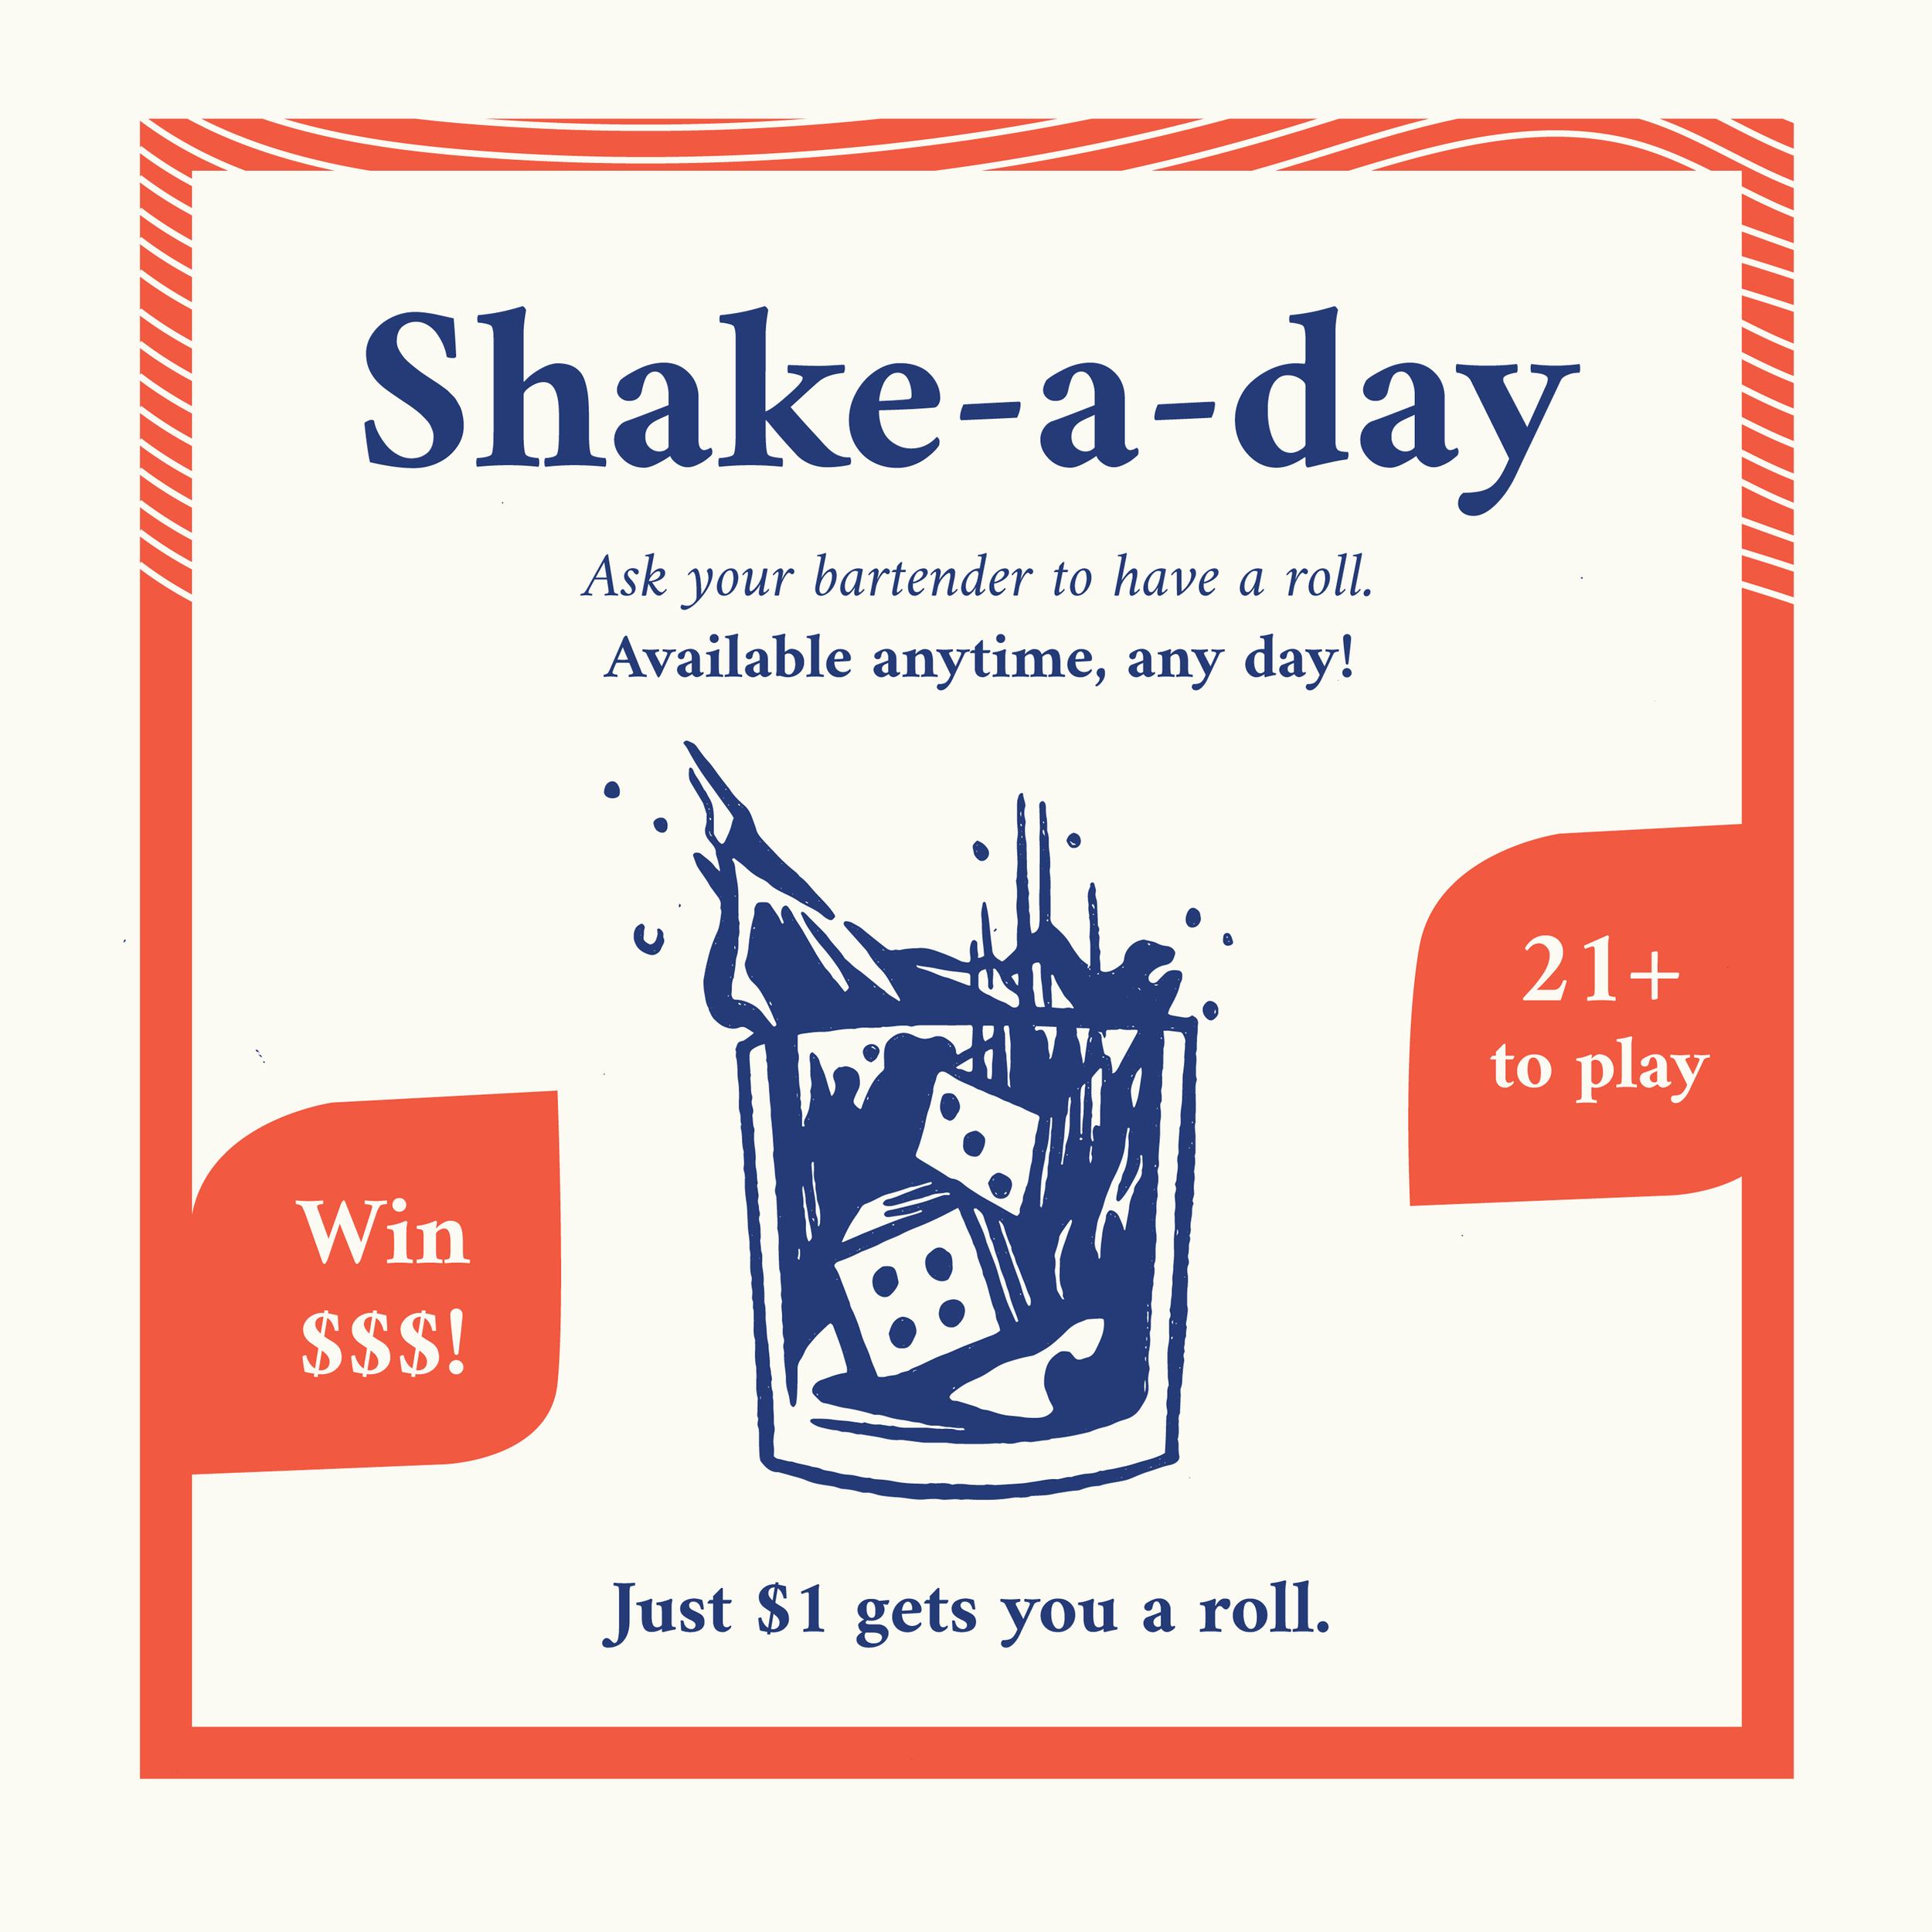 SHAKE-A-DAY - A yahtzee-like game that's played anytime, any day here at Anatomy!Just $1 gets you a roll.Roll 3 or 4 of a kind: Pay + $1 for an additional roll or get 20% off one item.Roll 5 of a kind to win 80% of the pot.10% to refill the pot and 10% to a charity of your choice.